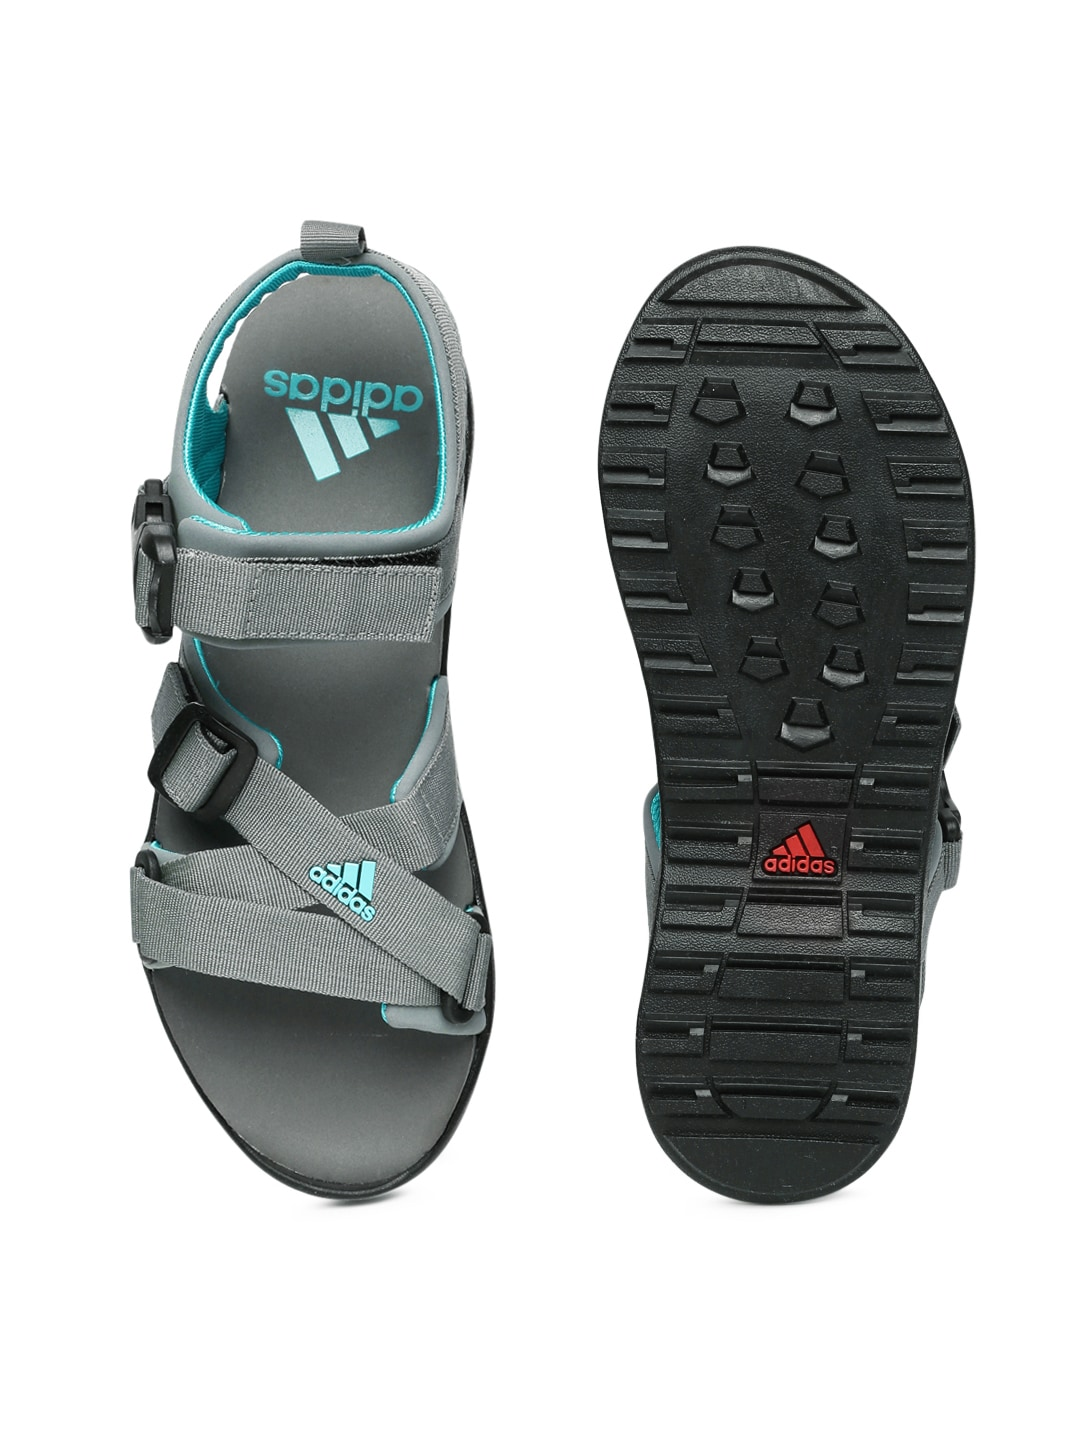 66d650494 adidas acupressure slippers on sale   OFF61% Discounted